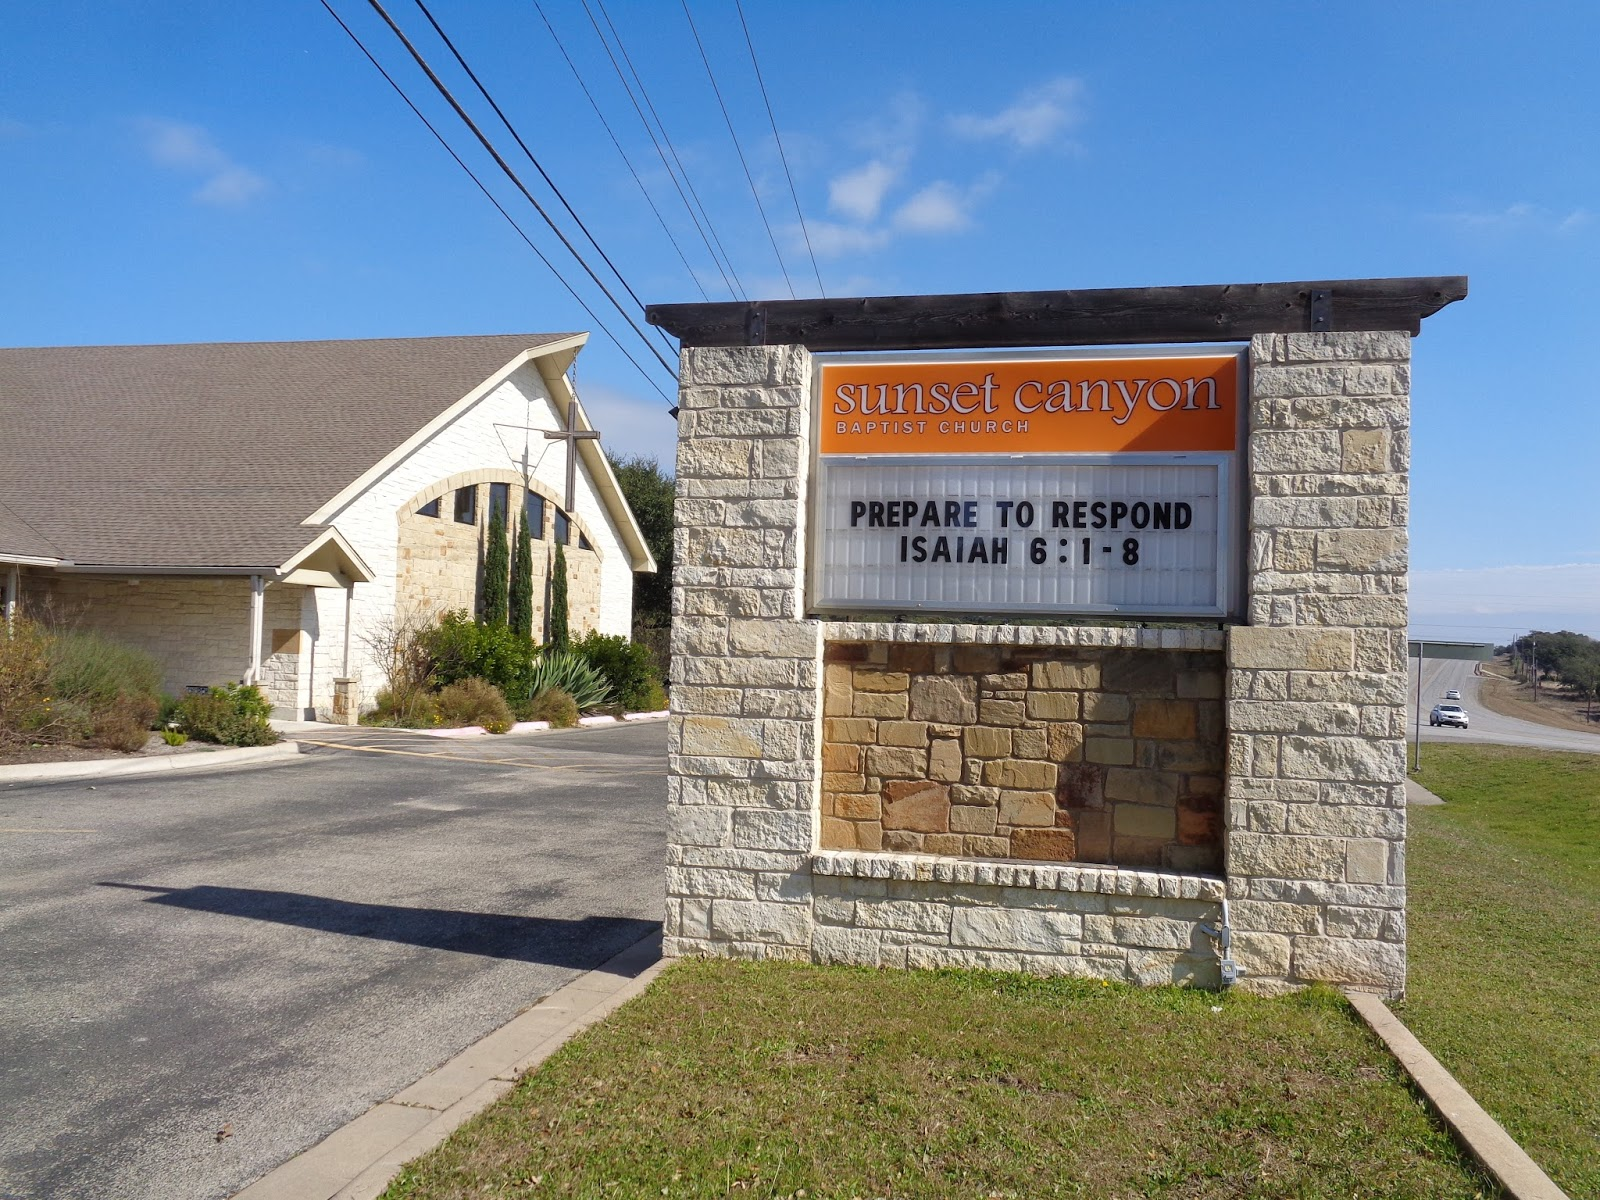 Sunset Canyon Church Dripping Springs